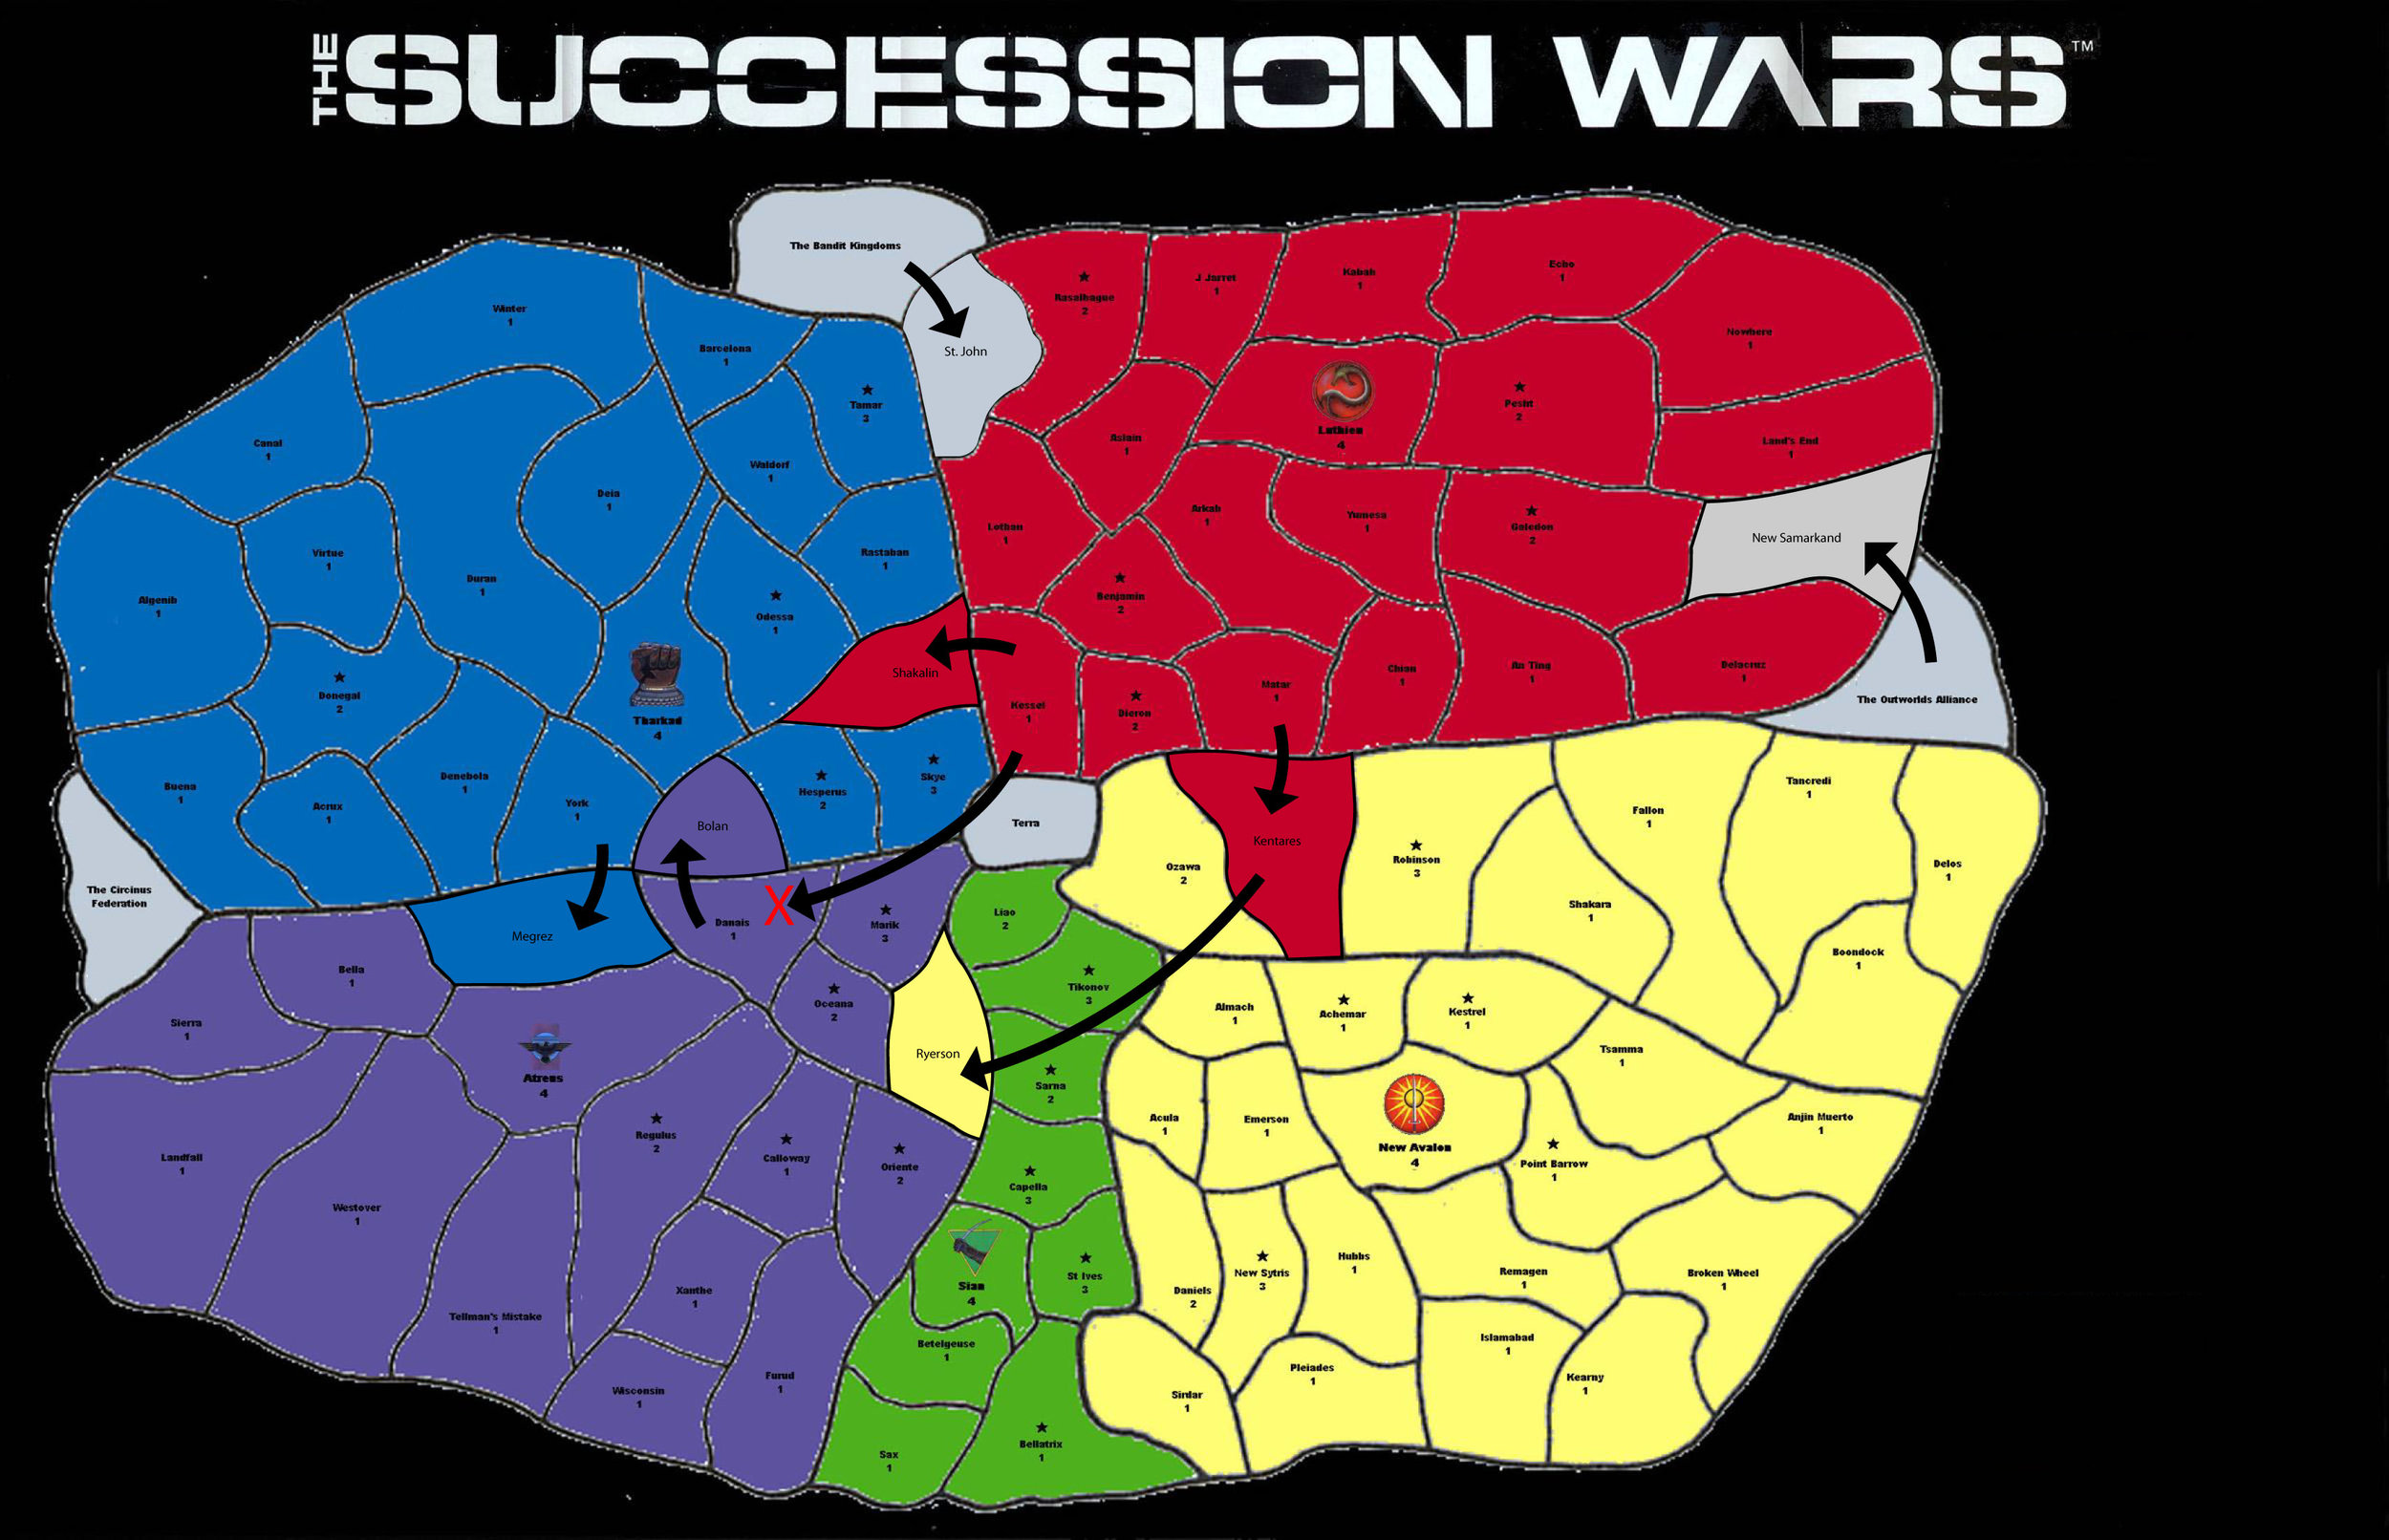 succession wars - year 1 - 30??